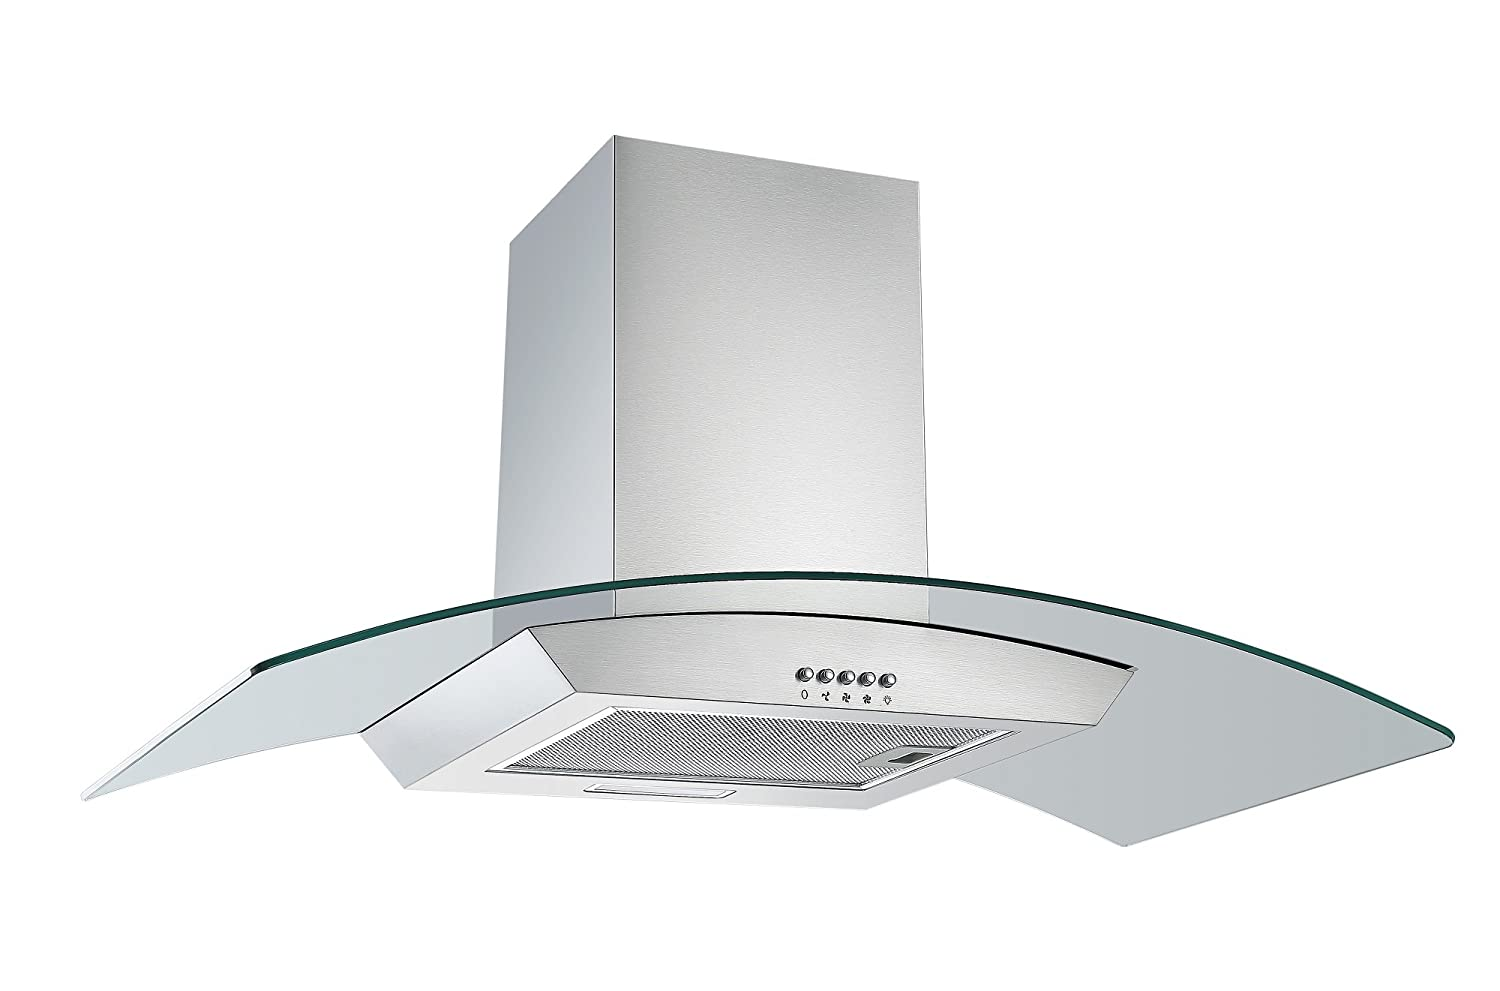 Cookology CGL900SS 90cm Curved Glass Chimney Cooker Hood in Stainless Steel | Wall Mounted Extractor Fan